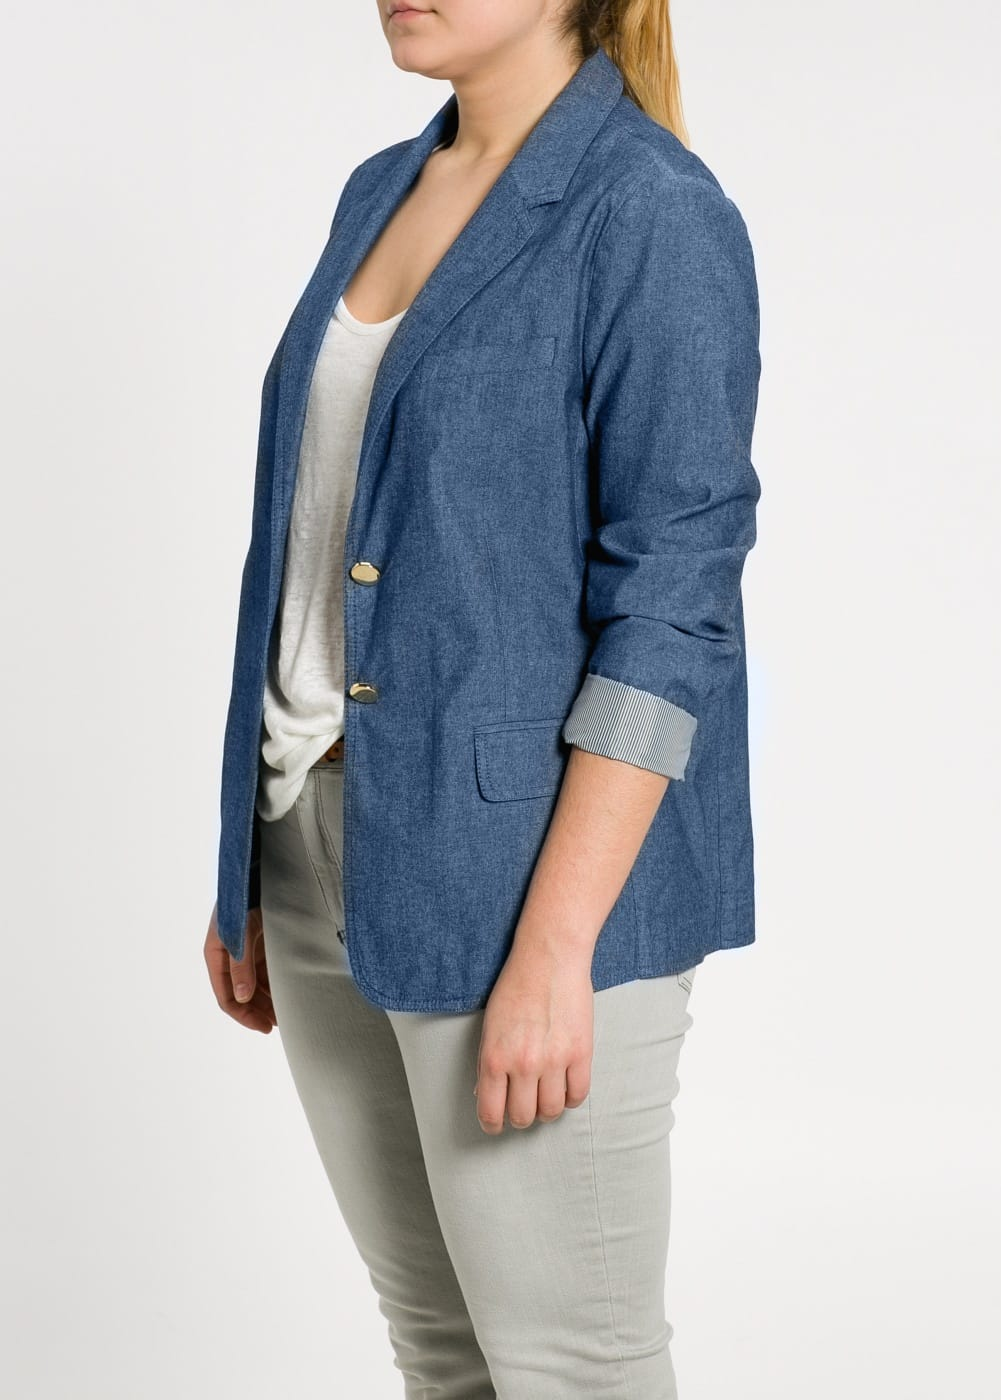 Chambray cotton blazer